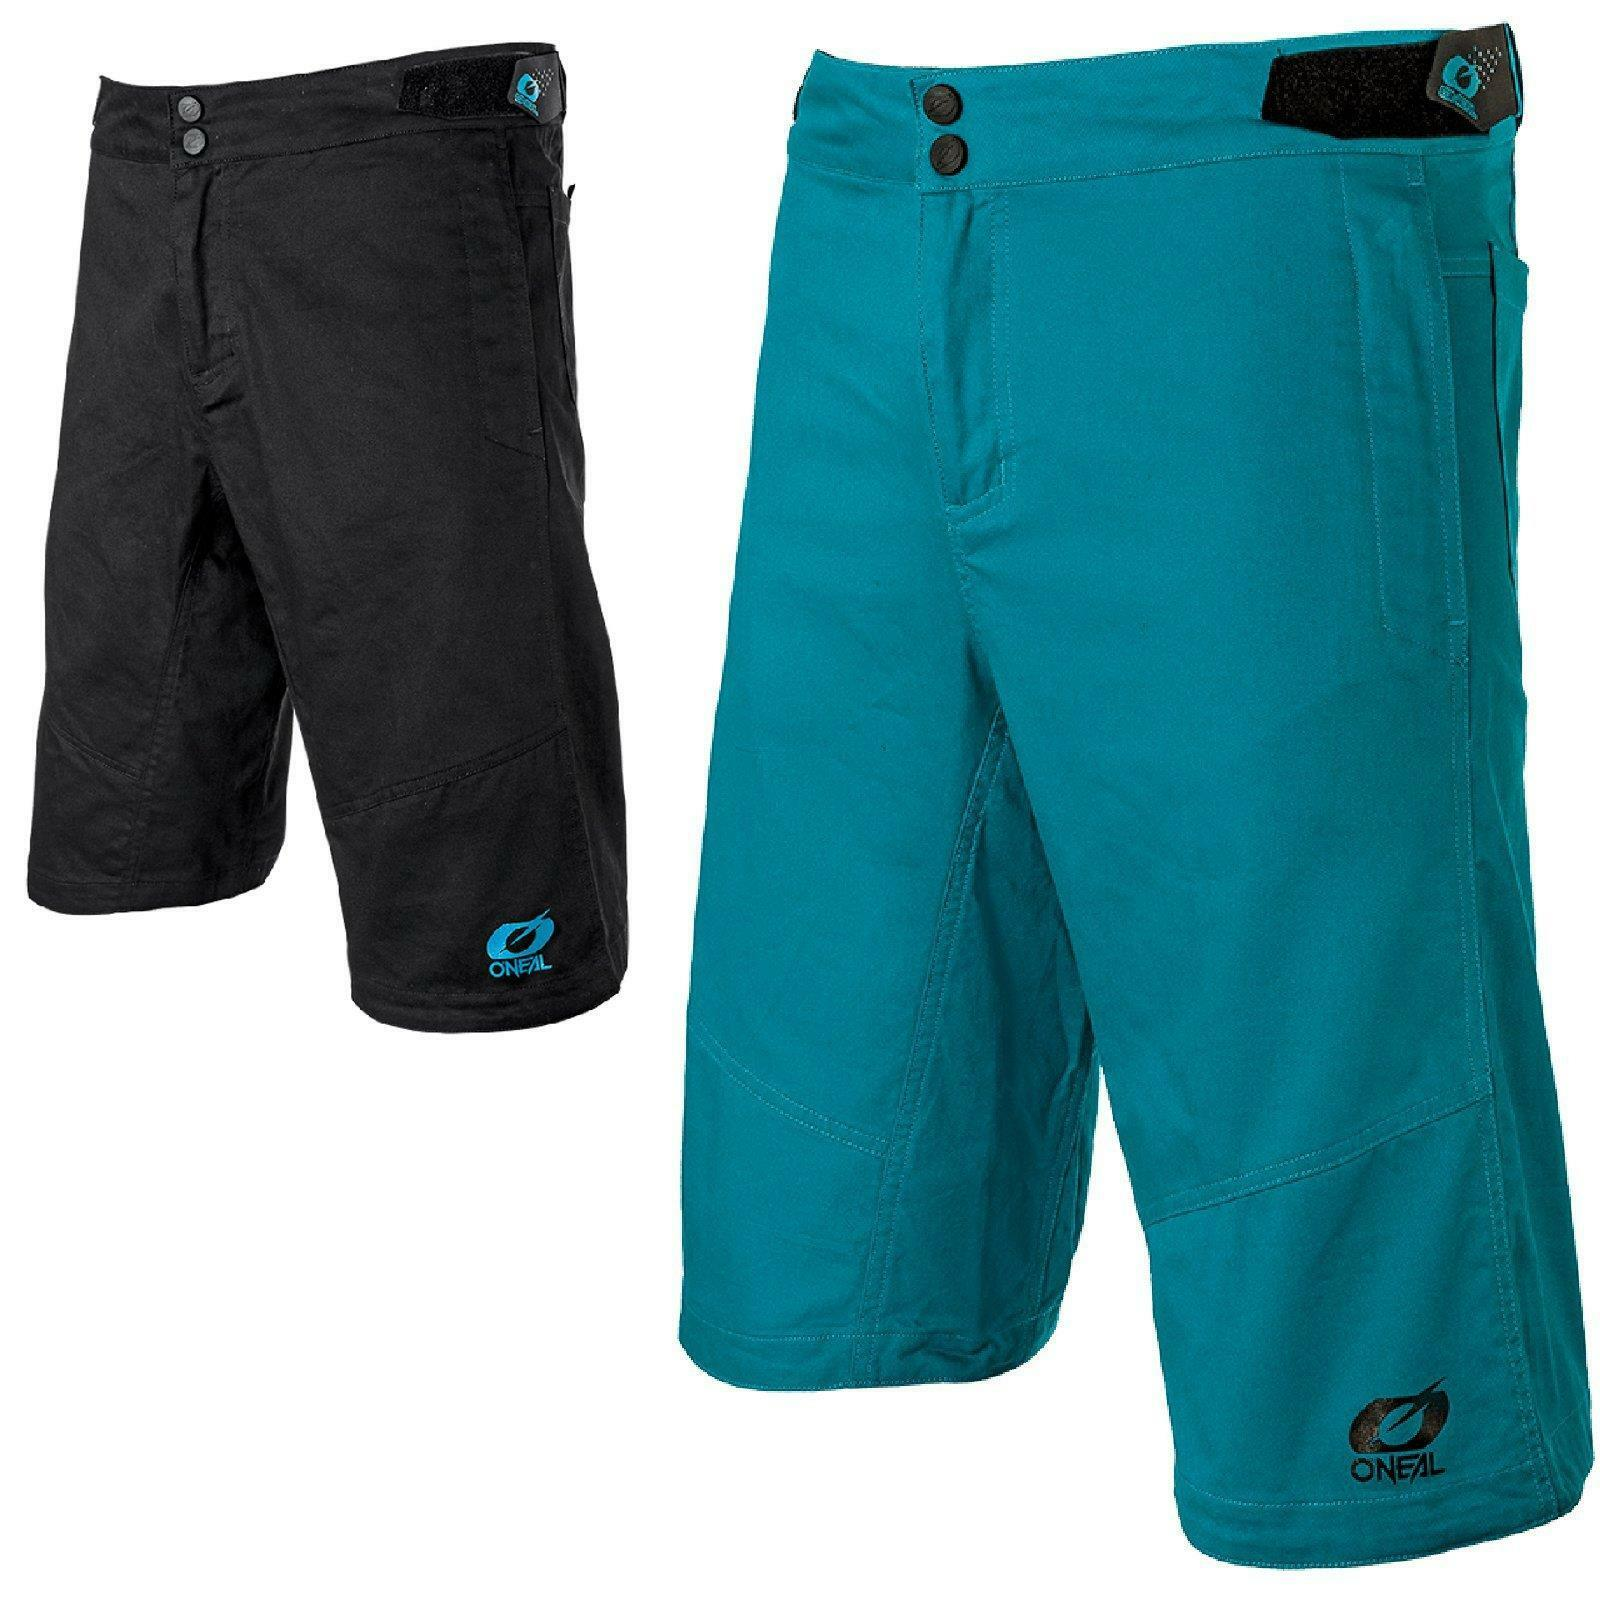 ONEAL All Mountain Bike Cargo Shorts Pantaloni MTB brevemente bicicletta DH DOWNHILL Trail